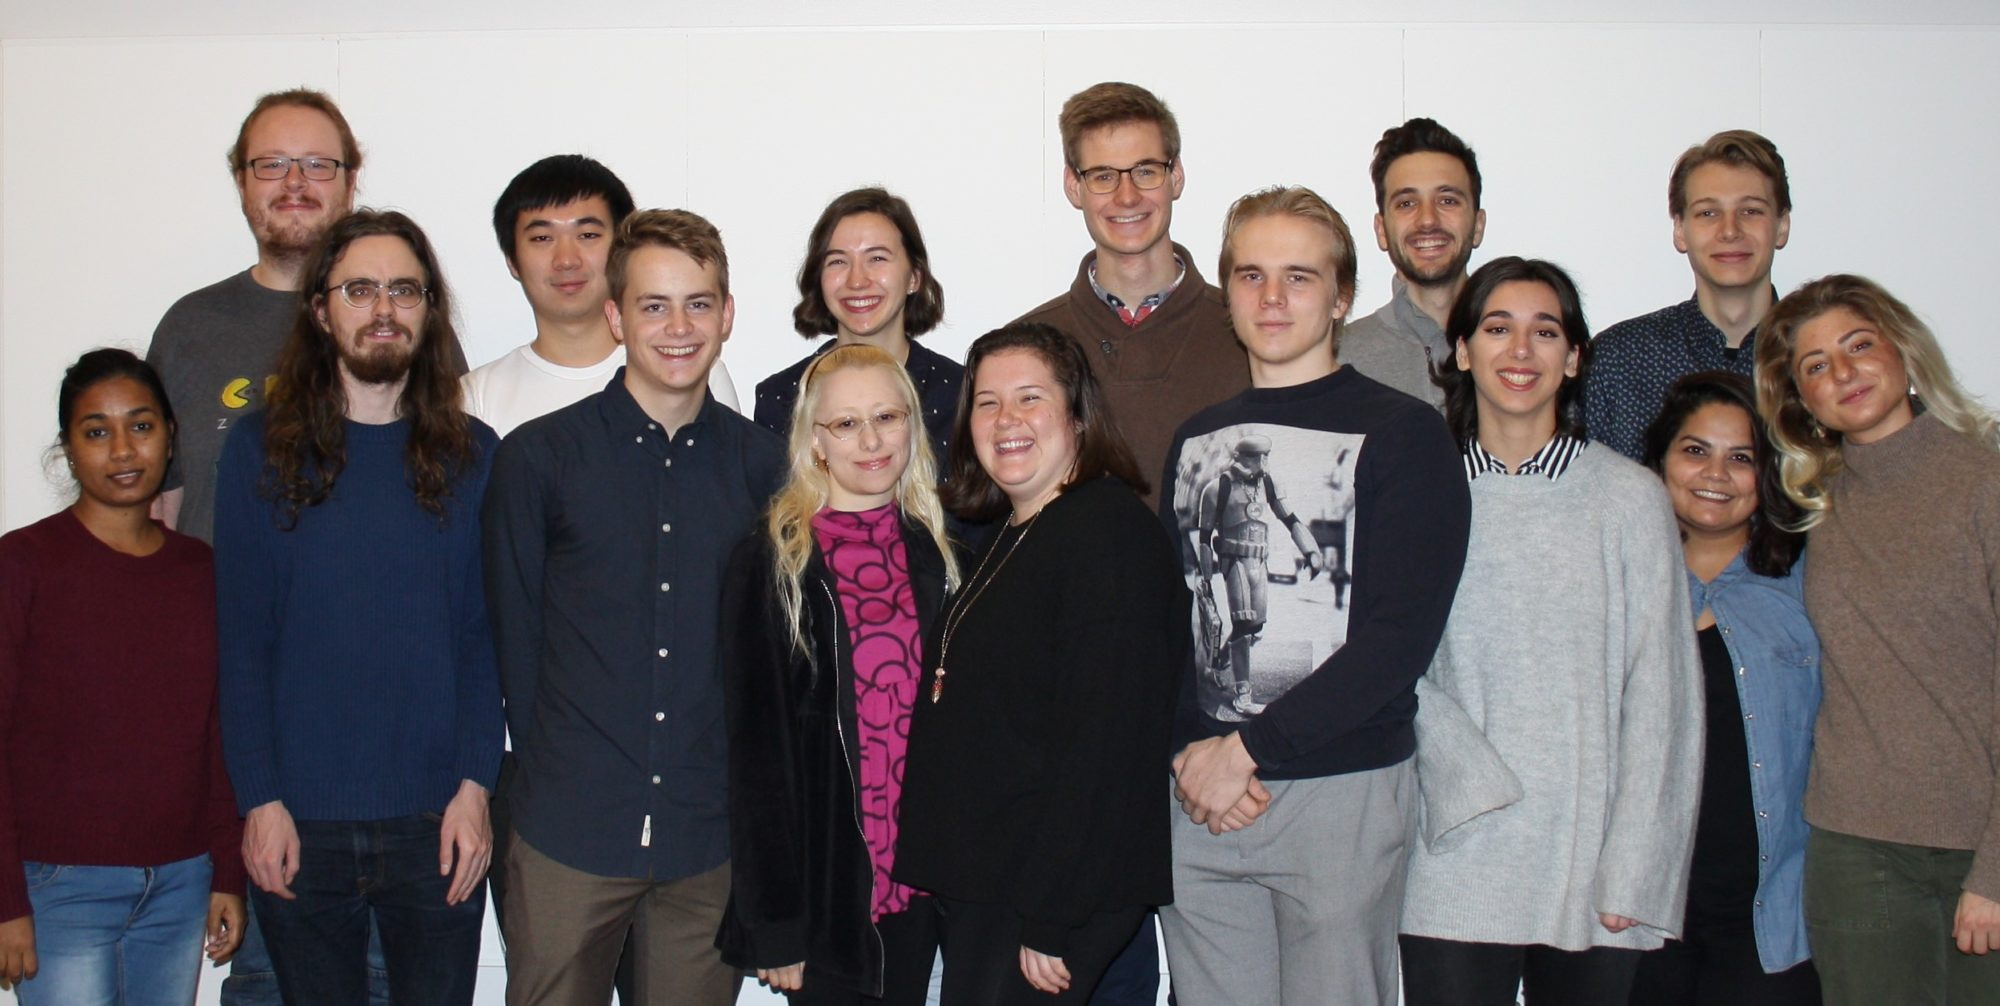 Uppsala University SensUs team